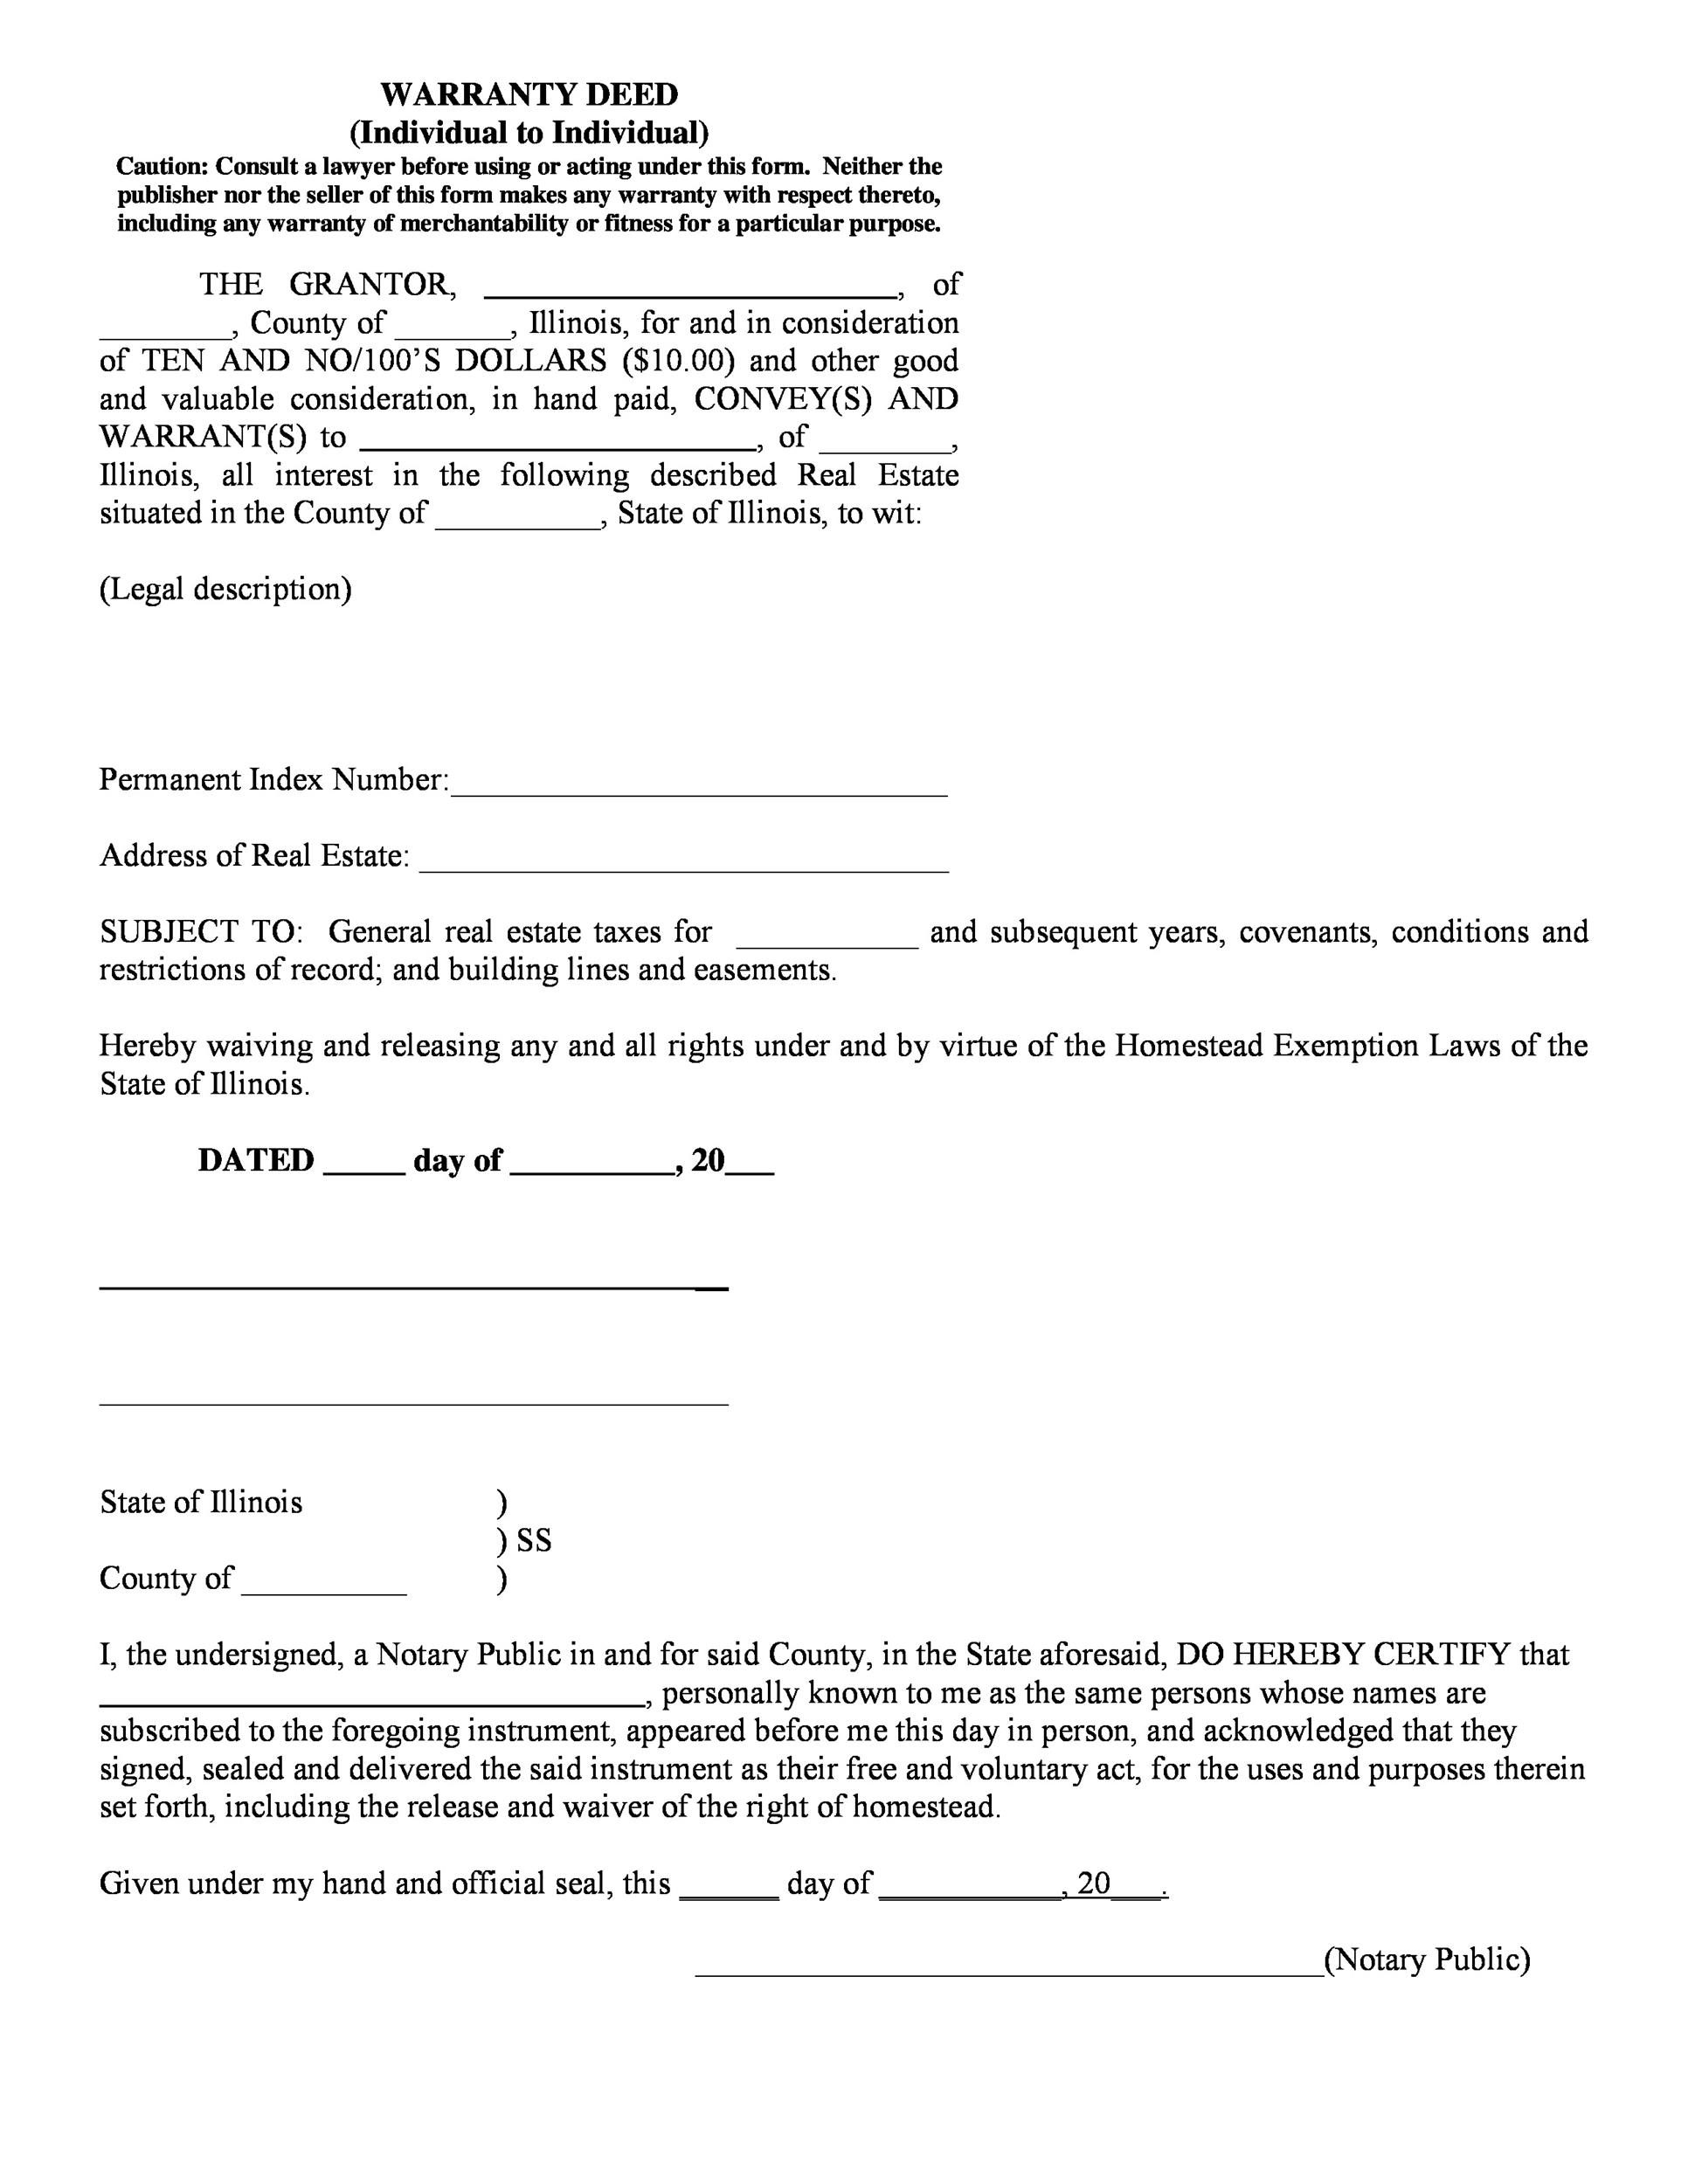 Free Warranty deed template 34